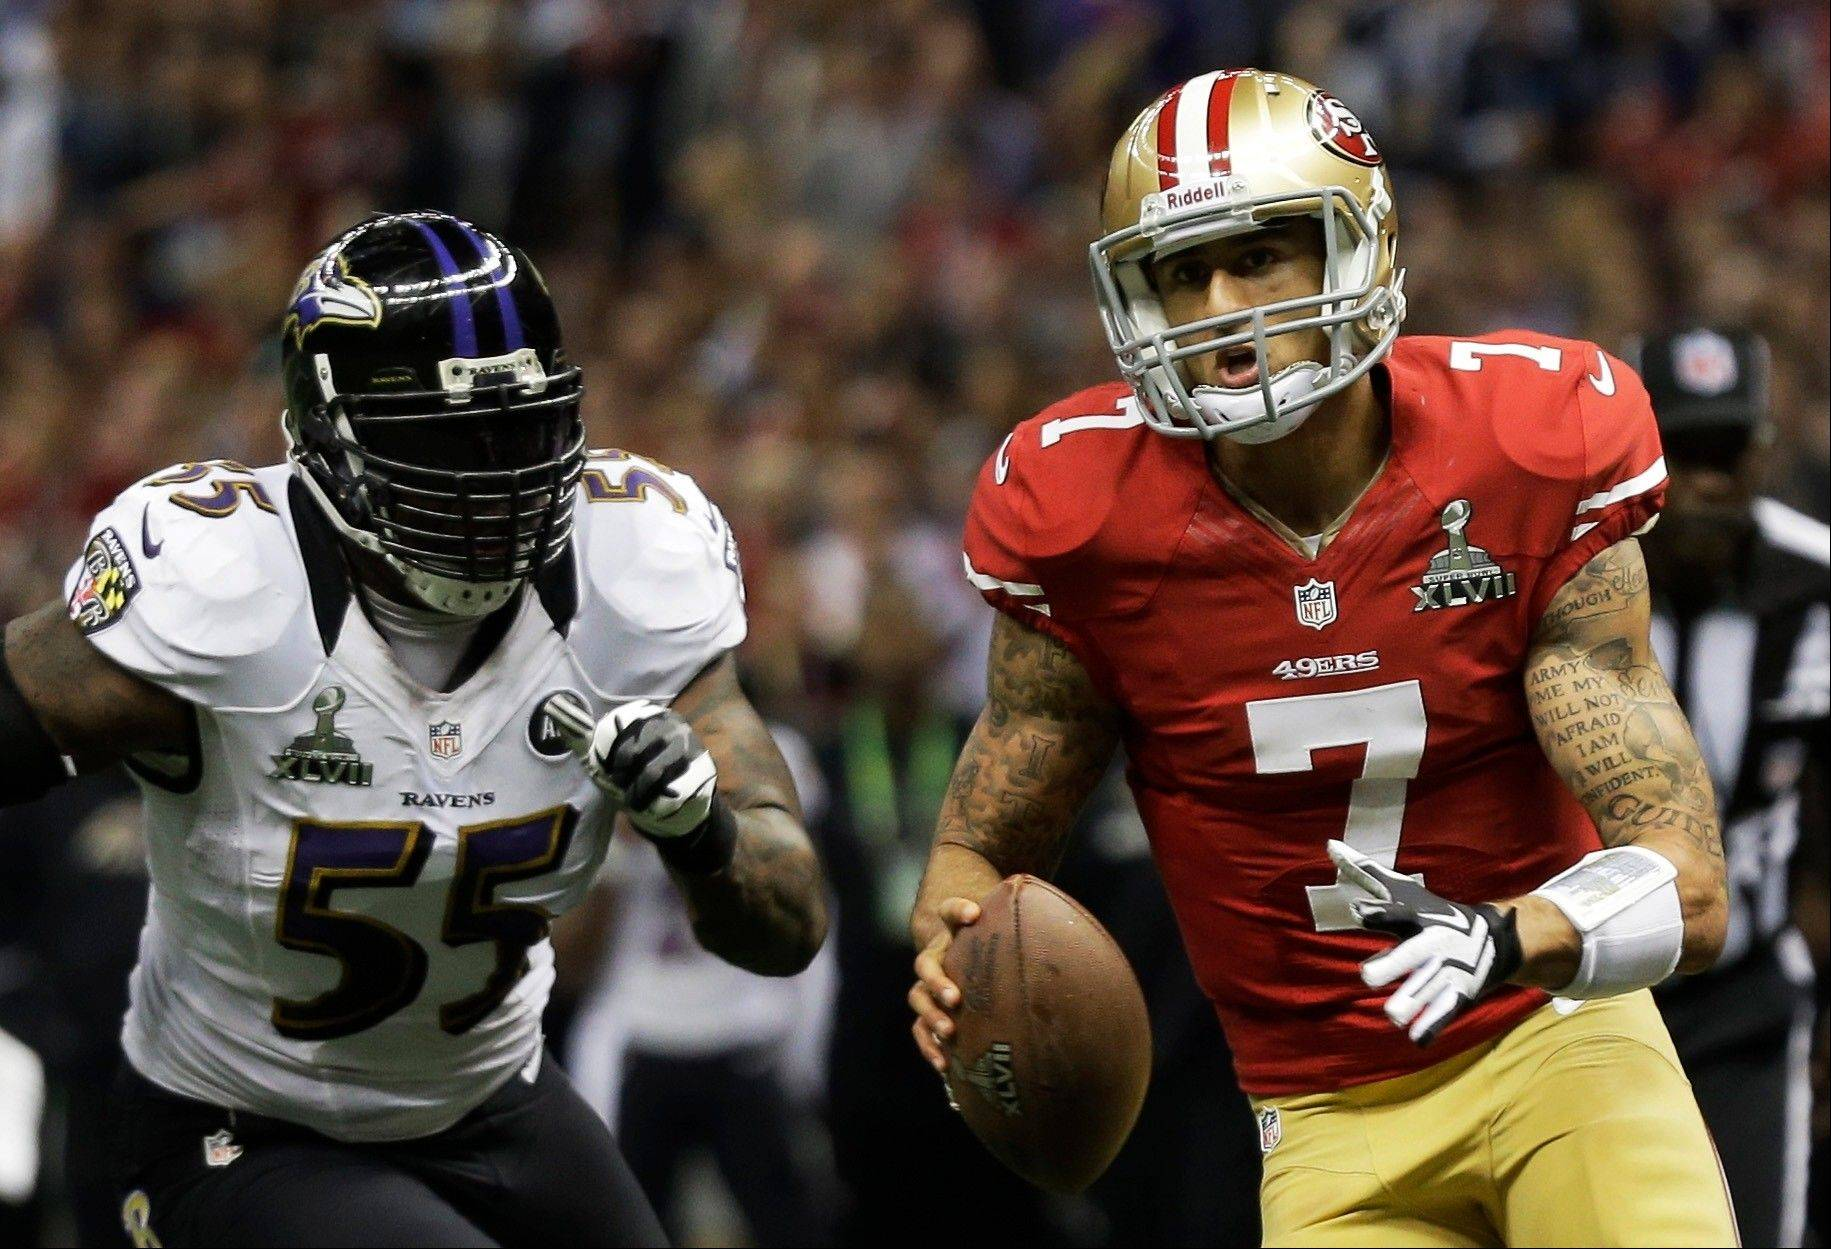 San Francisco 49ers quarterback Colin Kaepernick (7) carries the ball past Baltimore Ravens linebacker Terrell Suggs (55) during the first half.